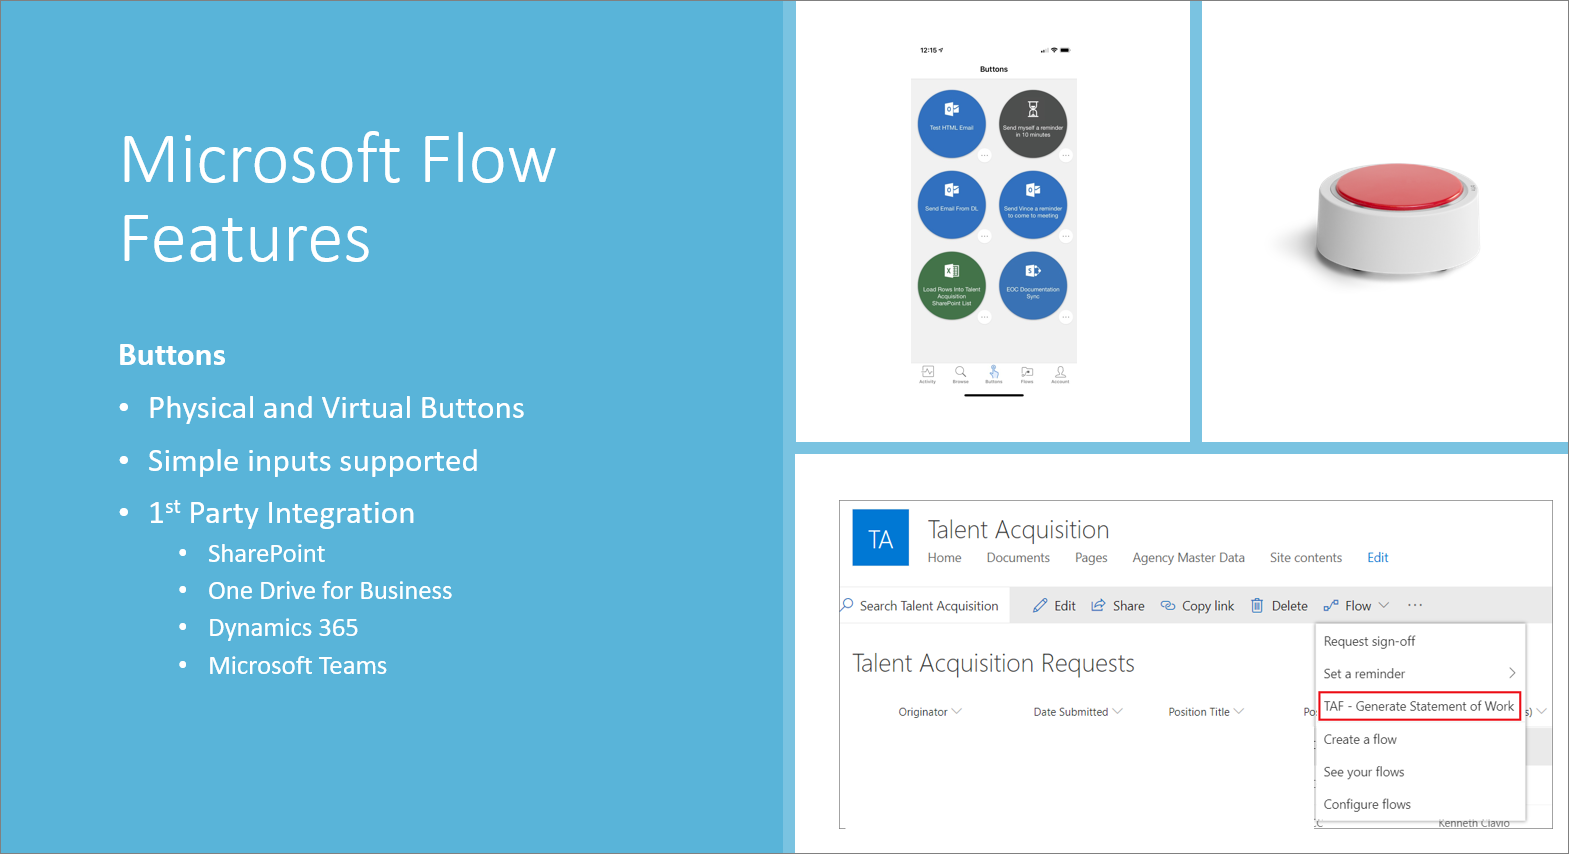 Microsoft Flow features